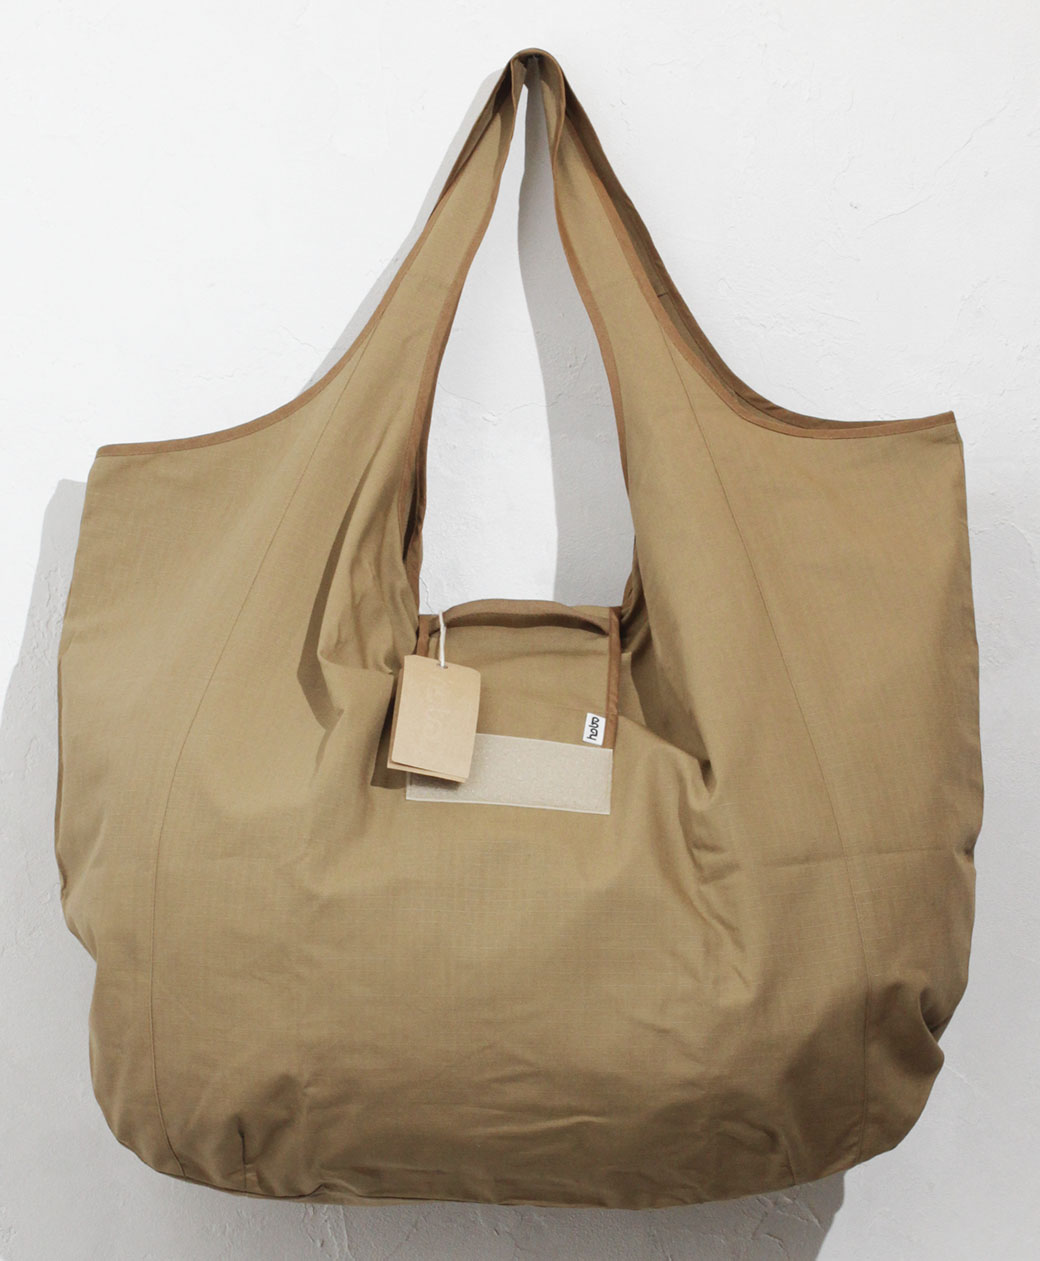 hobo COTTON RIPSTOP PACKABLE TOTE BAG